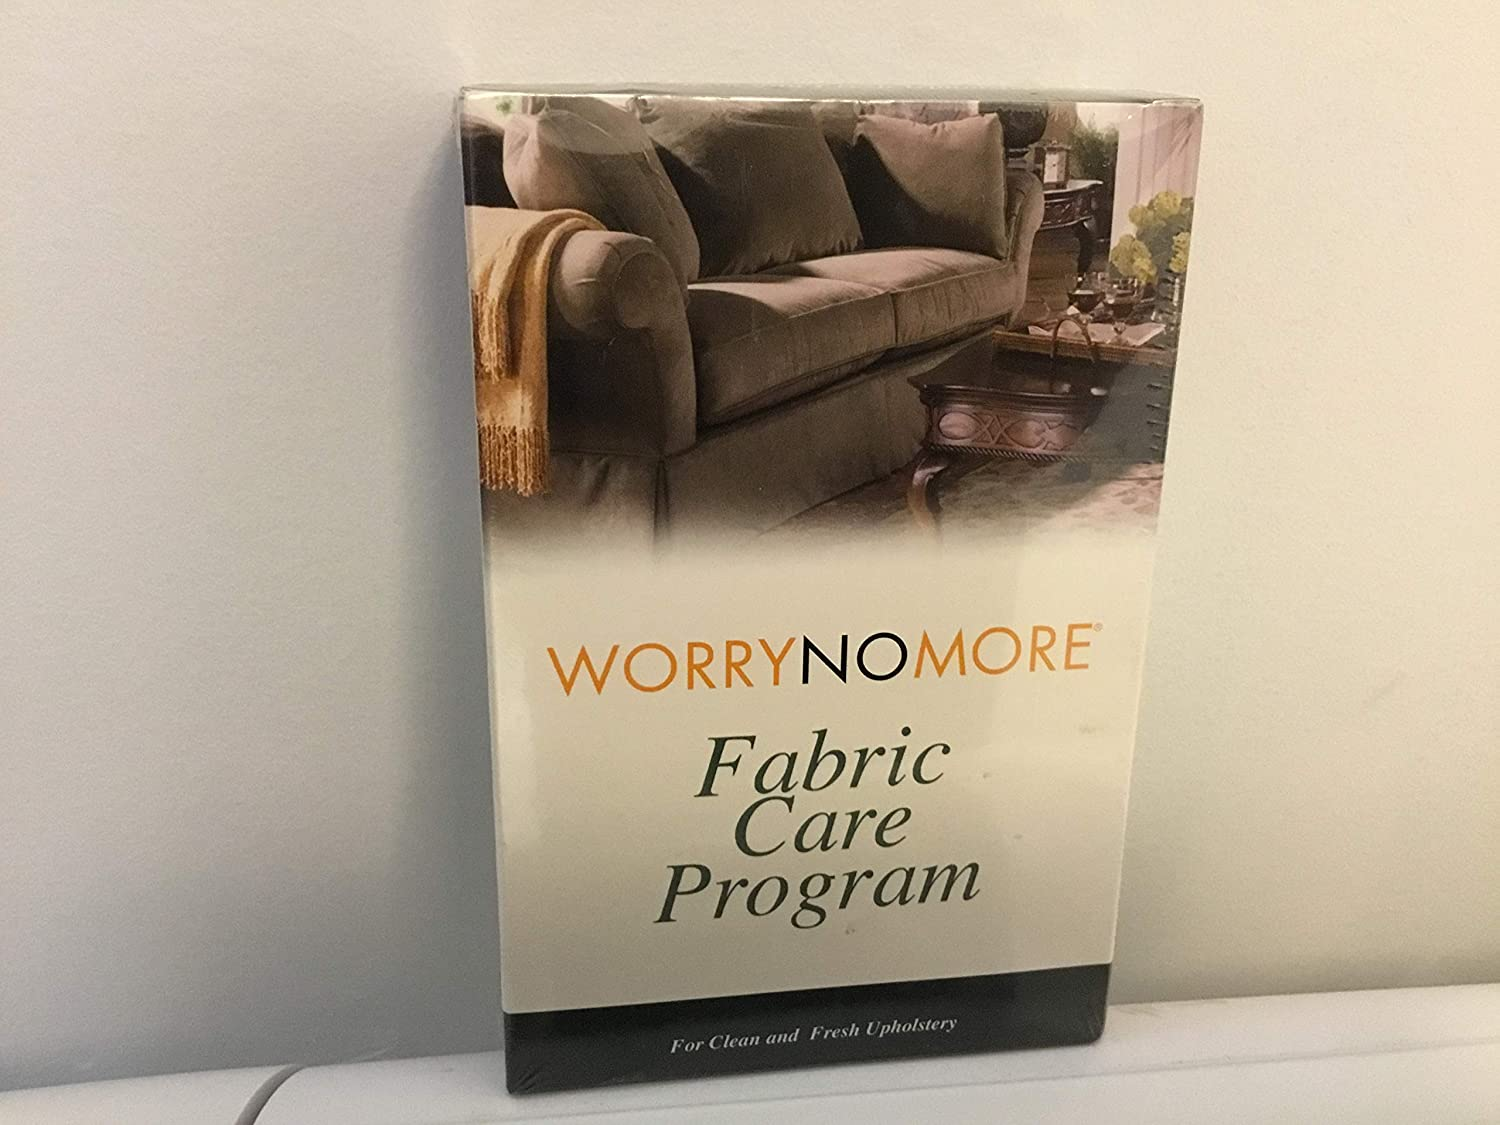 WORRYNOMORE Fabric Care Program fabric cleaner fabric fresh applicator